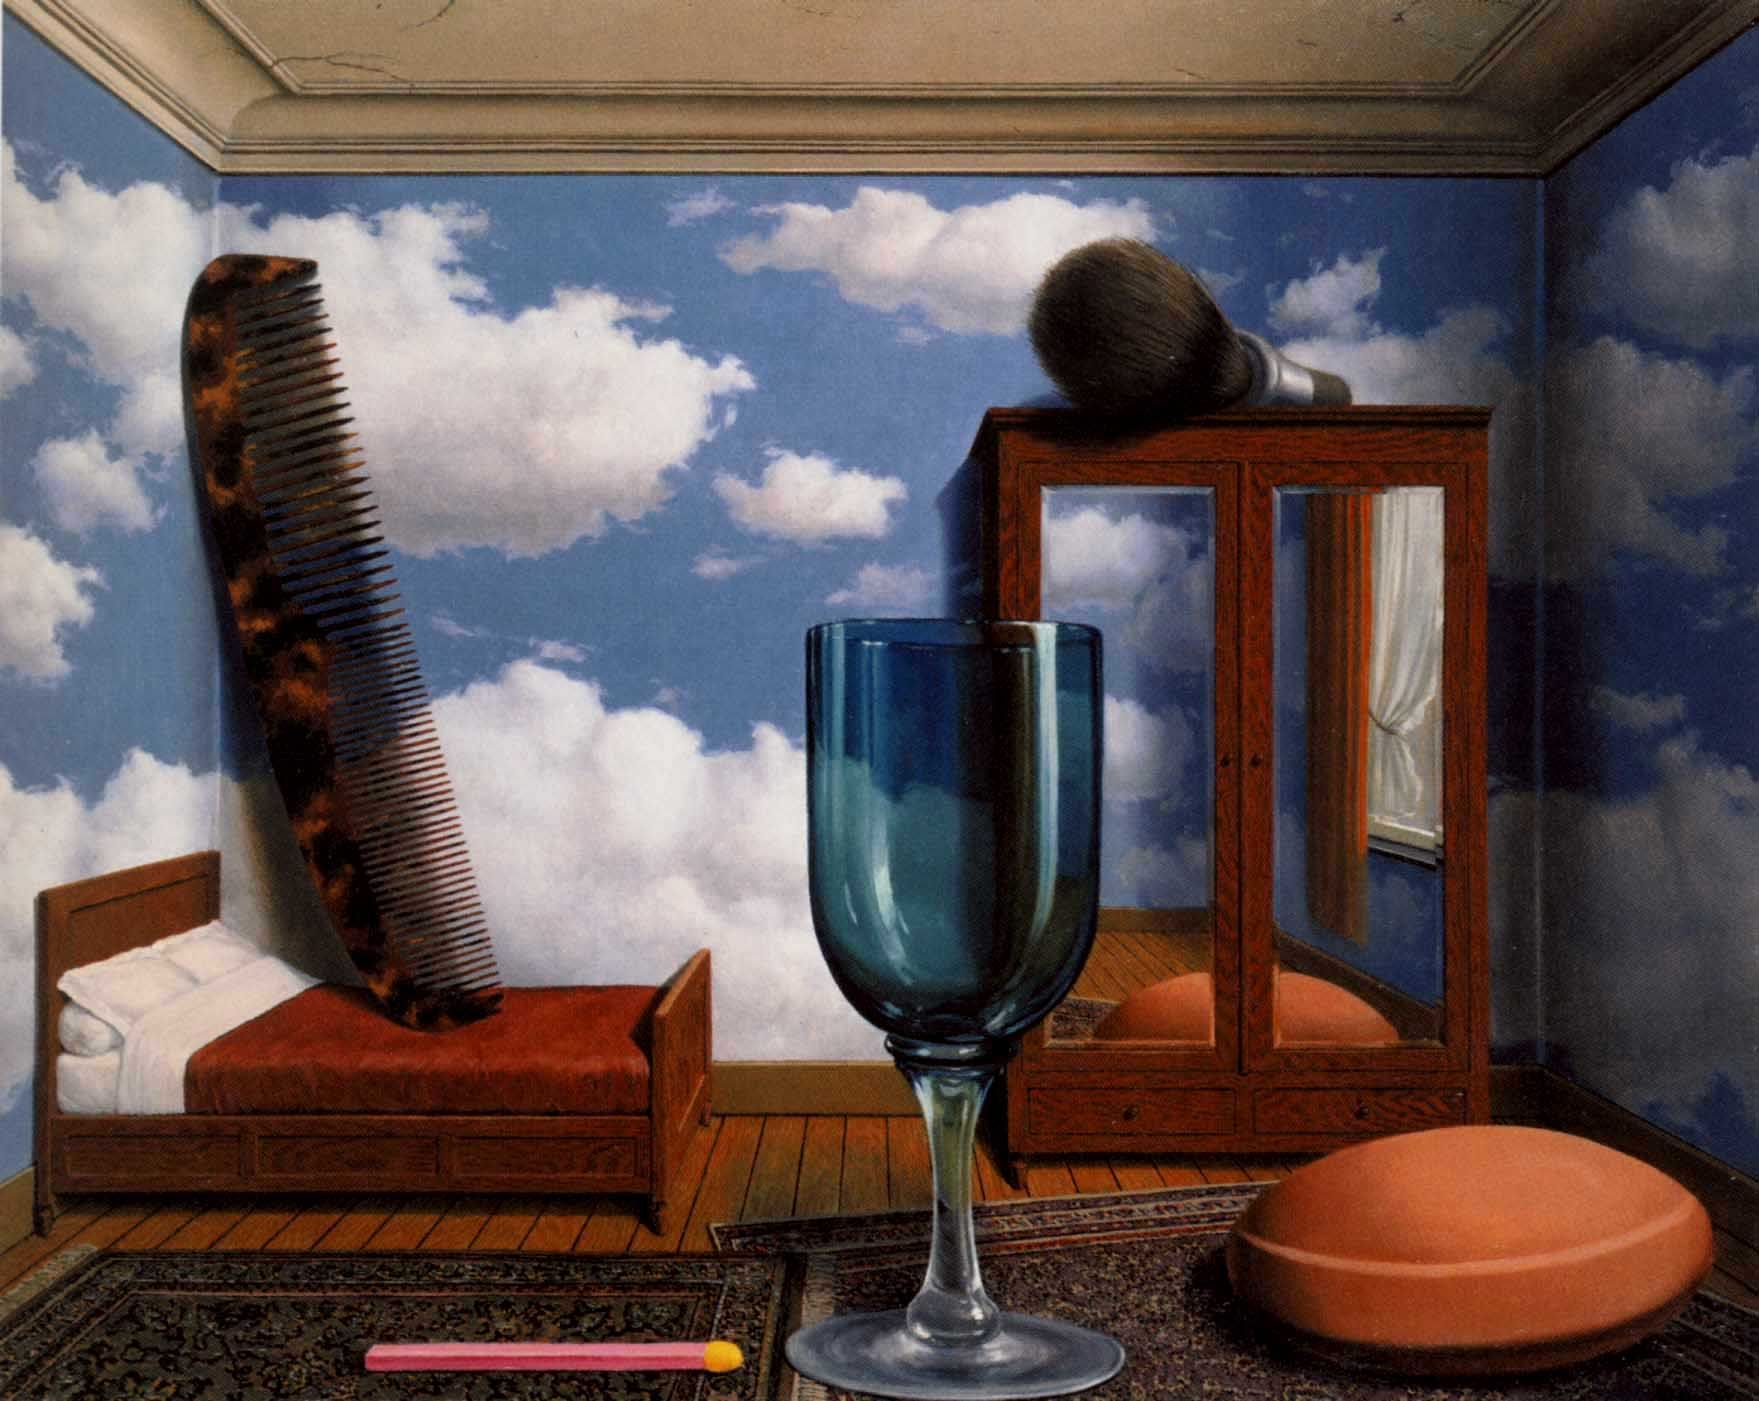 Magritte Art Magritte Surrealismo Y Pintores